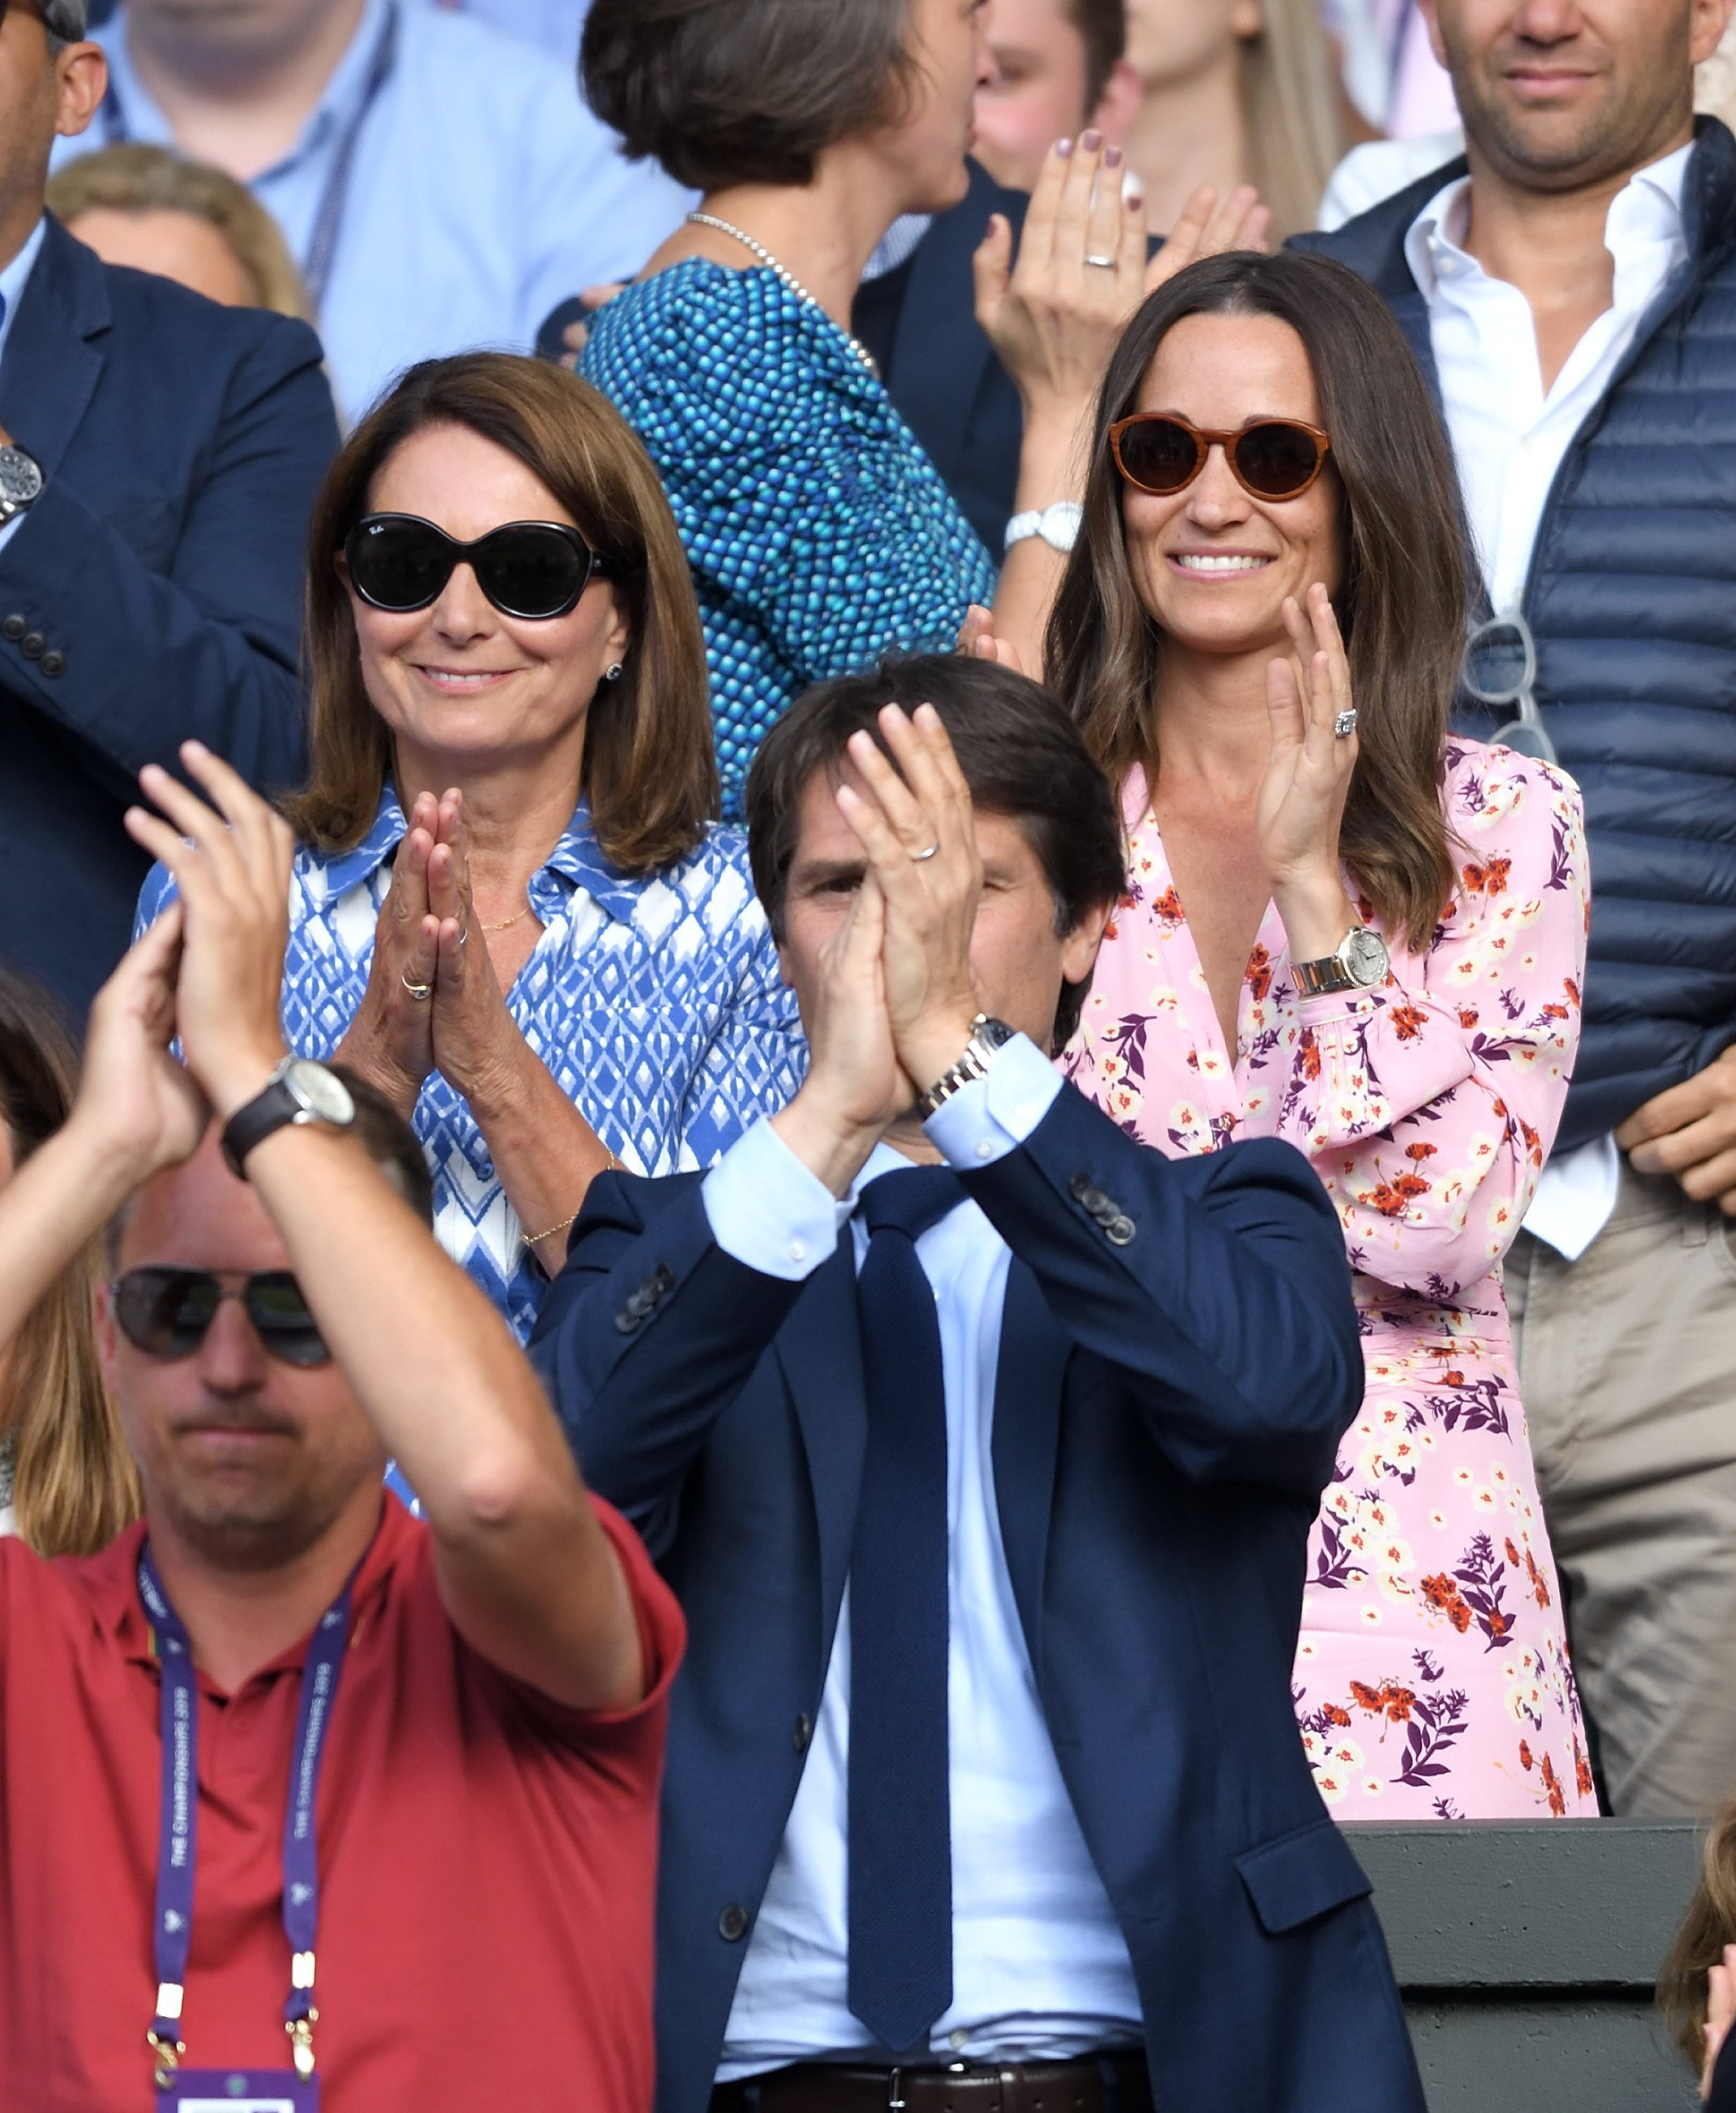 Carole Middleton et Pippa Middleton assistent à la treizième journée des Championnats de tennis de Wimbledon | Source : Getty Images